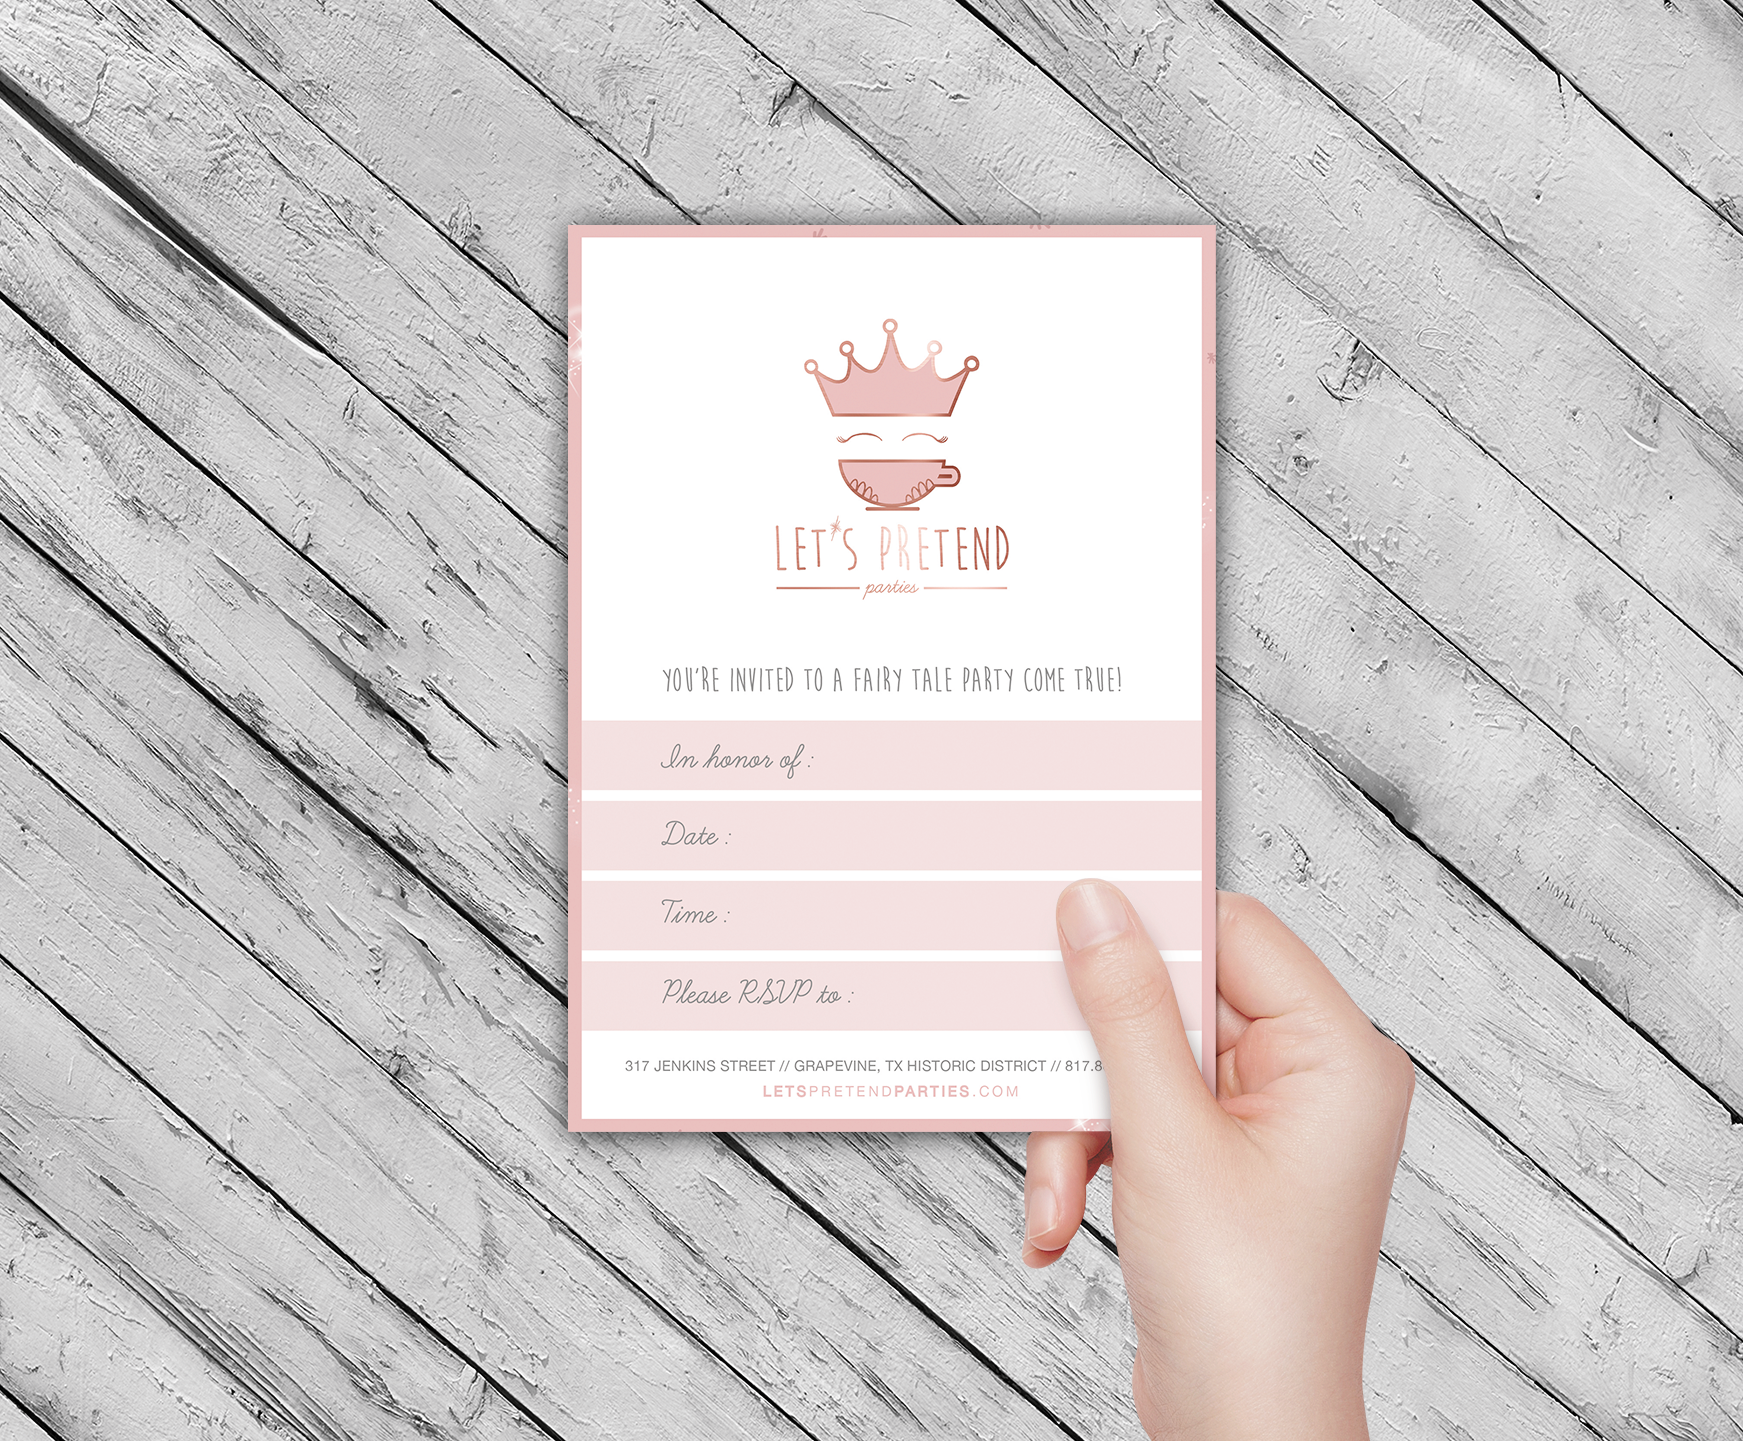 Invitation-mockup.png